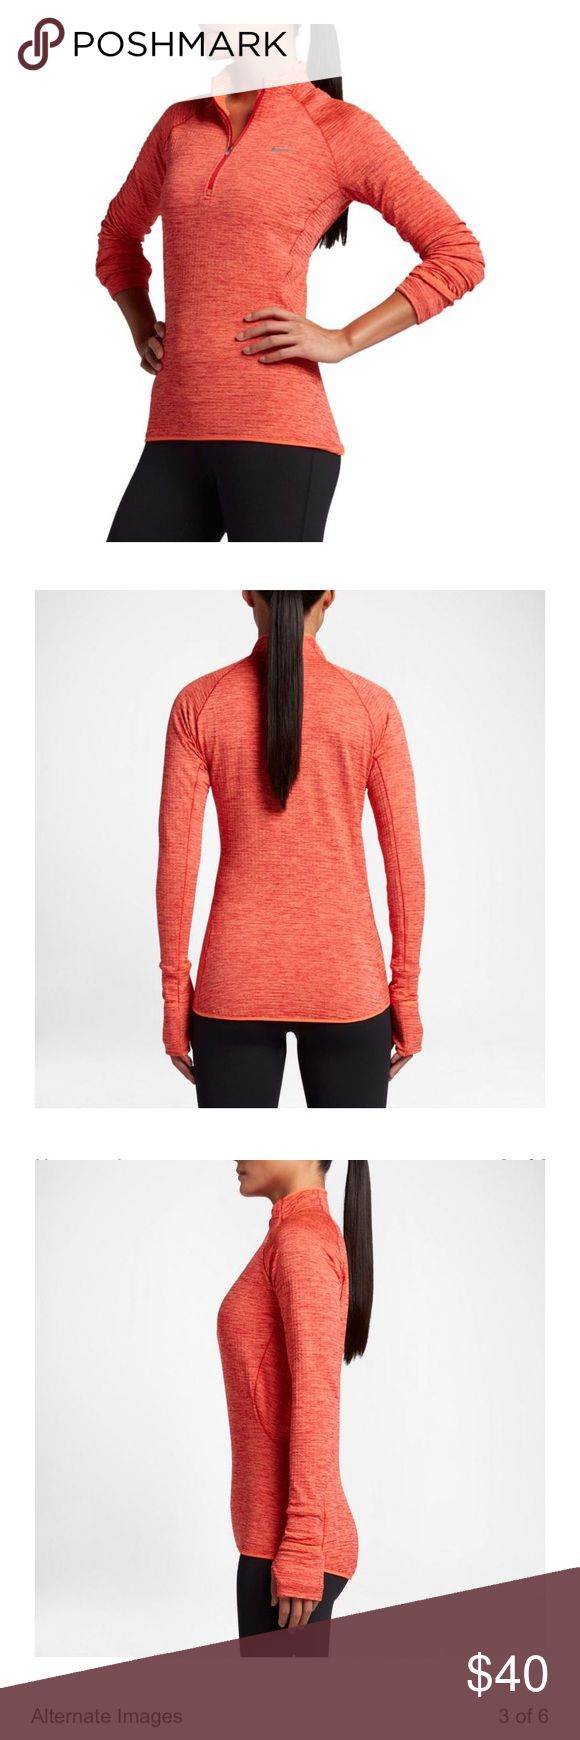 Nike Element Sphere Half Zip Running Shirt Nike Women's Element Sphere Half Zip Long Sleeve Running Shirt in excellent condition in the color Turf Orange. This half zip features a 3D fabric structure to trap air against your body and reduce cling during outdoor workouts. Thumbhole cuffs with fold-over mittens offer additional warmth, while the reflective elements provide enhanced low-light visibility. Warm up to speed up with the Element Sphere Half Zip running Shirt. Nike Tops